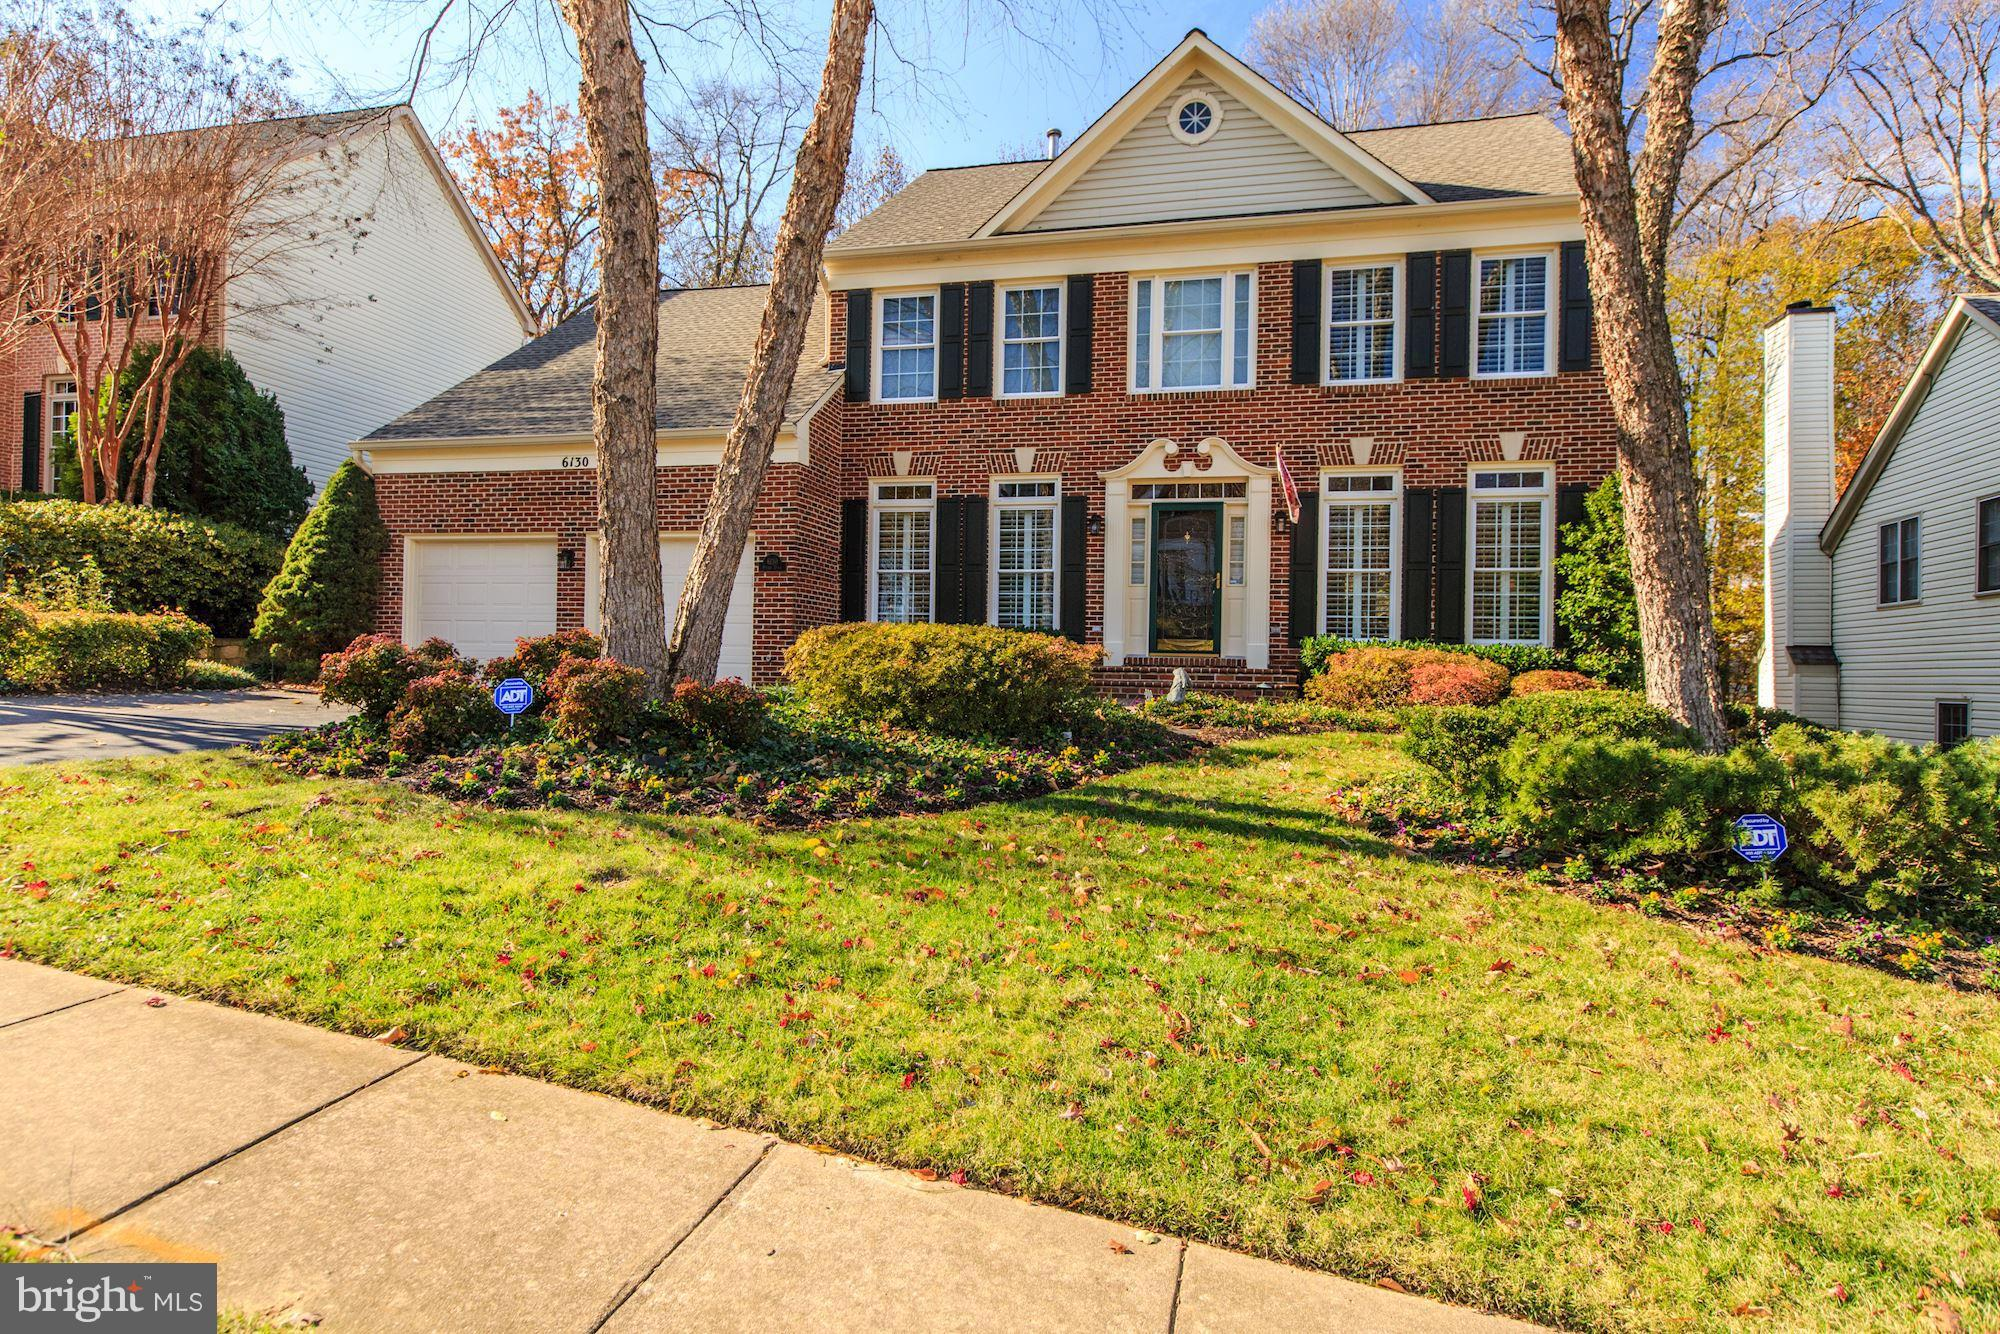 BACK ON MARKET!  BUYER HAD MEDICAL ISSUES.  INSPECTION & RADON DONE AND ARE ABOUT AS PERFECT AS THEY COME!  WELCOME HOME TO THIS IMPECCABLY MAINTAINED & TASTEFULLY UPDATED COLONIAL IN HIGHLY SOUGHT AFTER CLERM0NT SCHOOL DISTRICT.  SMALL ENCLAVE OF ESTATE HOMES IN PRIVATE WOODED SETTING.  OVER 3.000 SQ FT OF FIN LIVING SPACE ON 3 LVLS W/4 BR, 3.5 BA PLUS FINISHED W/OUT LOW LVL.  FABULOUS ENTERTAINMENT SPACE W/NATURAL FLOW FROM FORMAL LR & DR TO SUN FILLED UPDATED EAT-IN KITCHEN ADJACENT TO HALF BA, LAUNDRY & GARAGE ACCESS.  ACCESS OVERSIZED REAR DECK FROM KITCHEN & GREAT RM AS YOU ENJOY ENTERTAINING & DINING FROM PRIVATE TREED SETTING.  GAS FP IN GREAT ROOM W/ACCESS TO REAR DECK.  MAIN FLOOR OFFICE ALSO IDEAL AS A STUDY SPACE.  MASTER BATH W/WIC AND SPA LIKE LUXURY BATH TO INCLUDE GRANITE TOPPED DUAL SINK VANITIES, WINE FRIDGE, CUSTOM CABINETRY & FRAMELESS DUAL HEAD SHOWER ENCLOSURE.  FIN WALK-OUT LOW LVL BOASTS FULL BATH & ENORMOUS RECREATION ROOM - IDEAL FOR PLAY AND OVERNIGHT GUESTS.  ENORMOUS STORAGE ROOM OFFERS ROOM FOR FUTURE BUILD-OUT.  EXPANSIVE LIST OF UPDATES TO INCLUDE ARCHITECTURAL ROOF, WINDOWS, DOORS, FLOORING, ALL BATHS & KITCHEN, APPLIANCES, HUMIDIFIER, IRRIGATION, HWH,  HARDSCAPE & LANDSCAPE.  CUSTOM PLANTATIONS THROUGHOUT. MOVE RIGHT IN & BE PREPARED FOR SPRINGTIME BLOOMS!